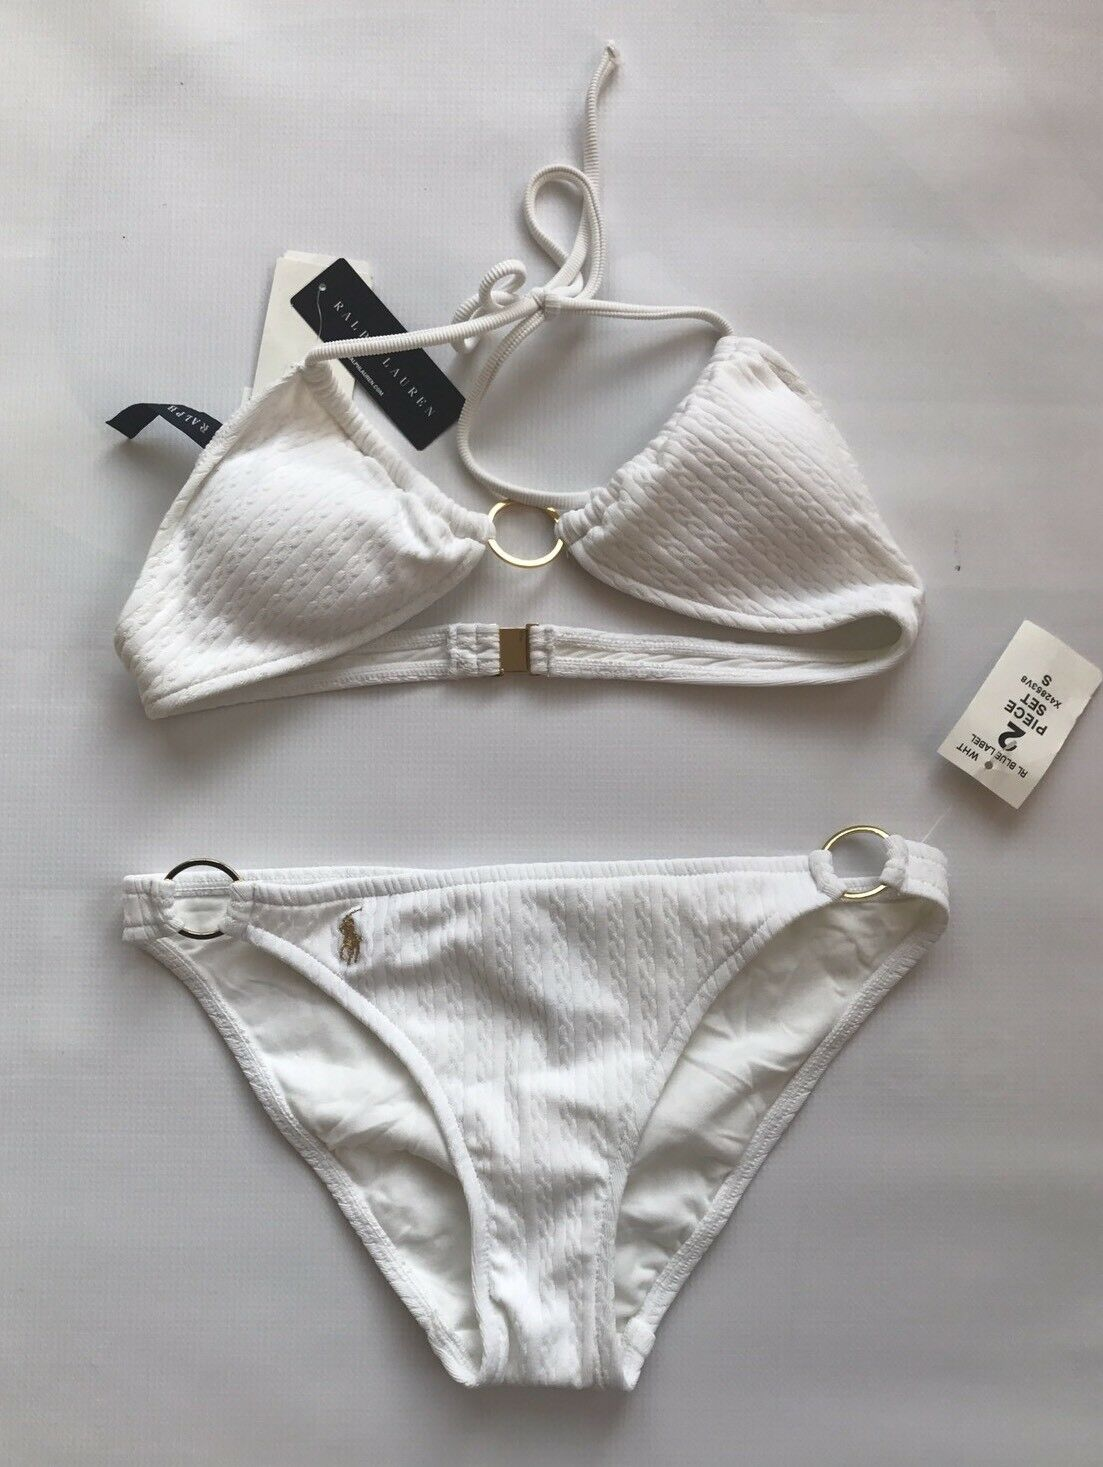 Polo Ralph Lauren 2 PC Women's Bathing Swimming Suit White gold Small Brand New